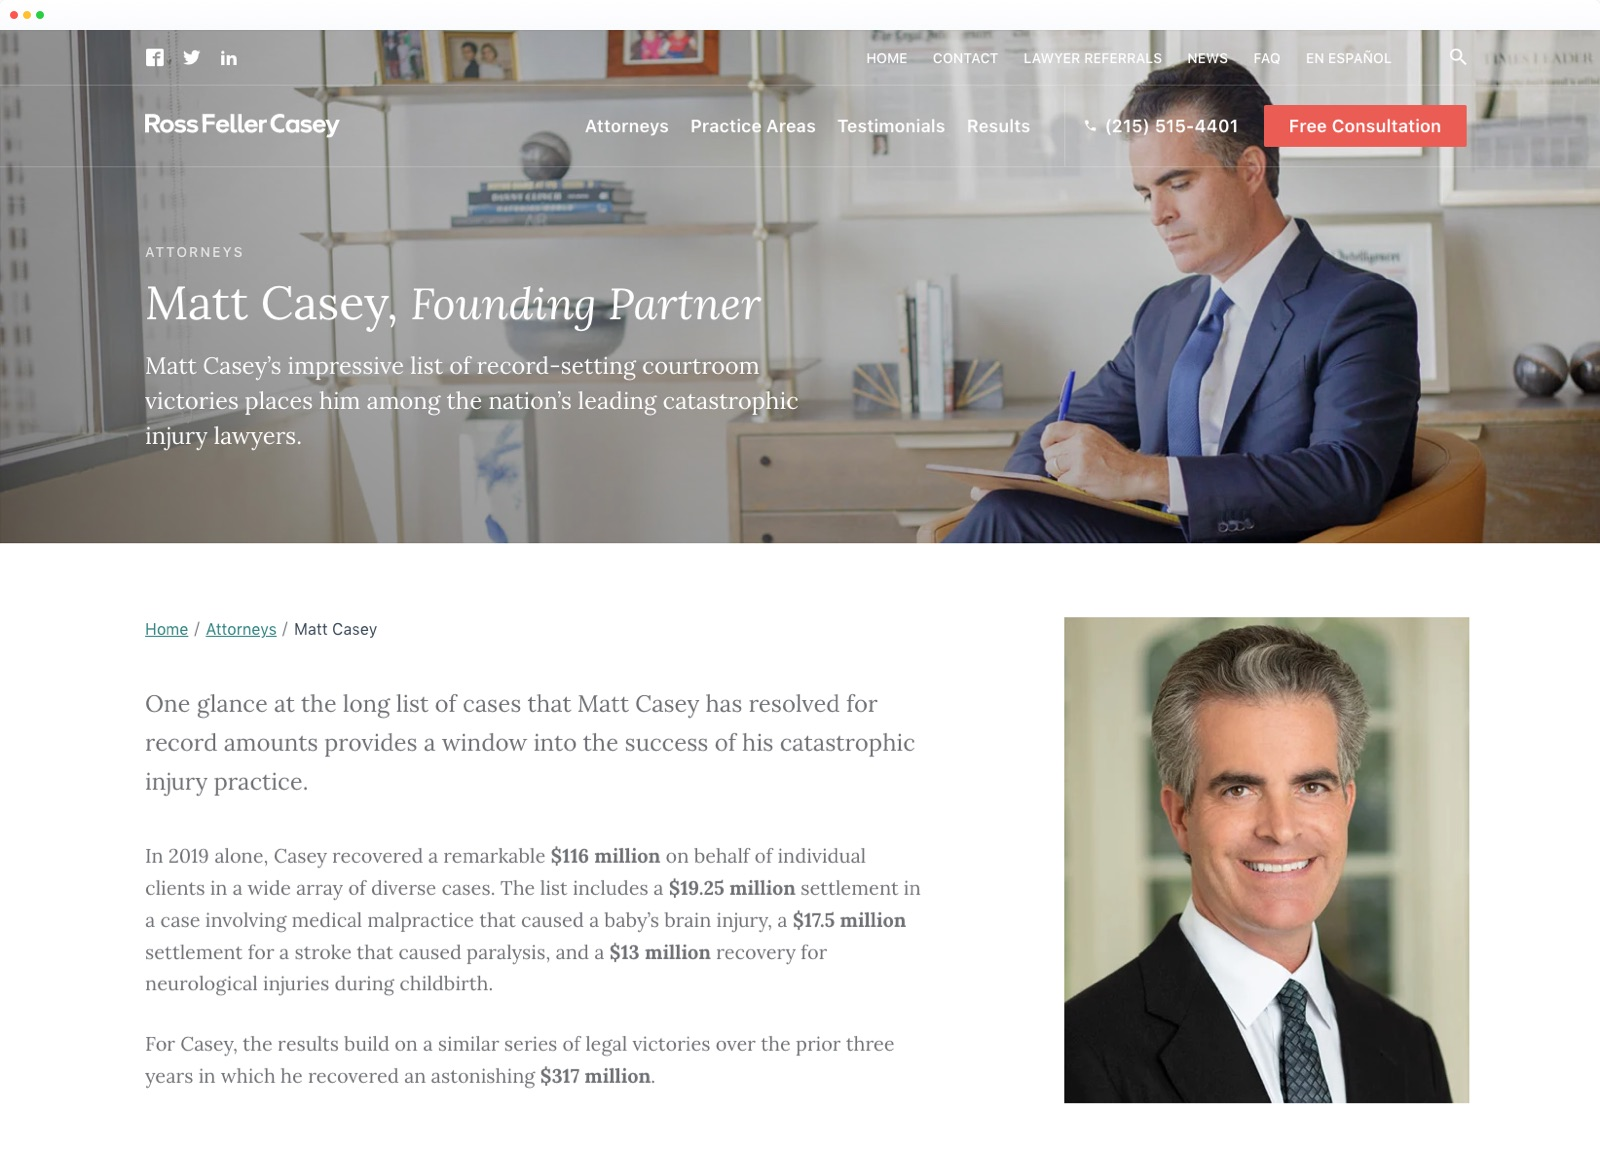 Attorney profile page from Ross Feller Casey